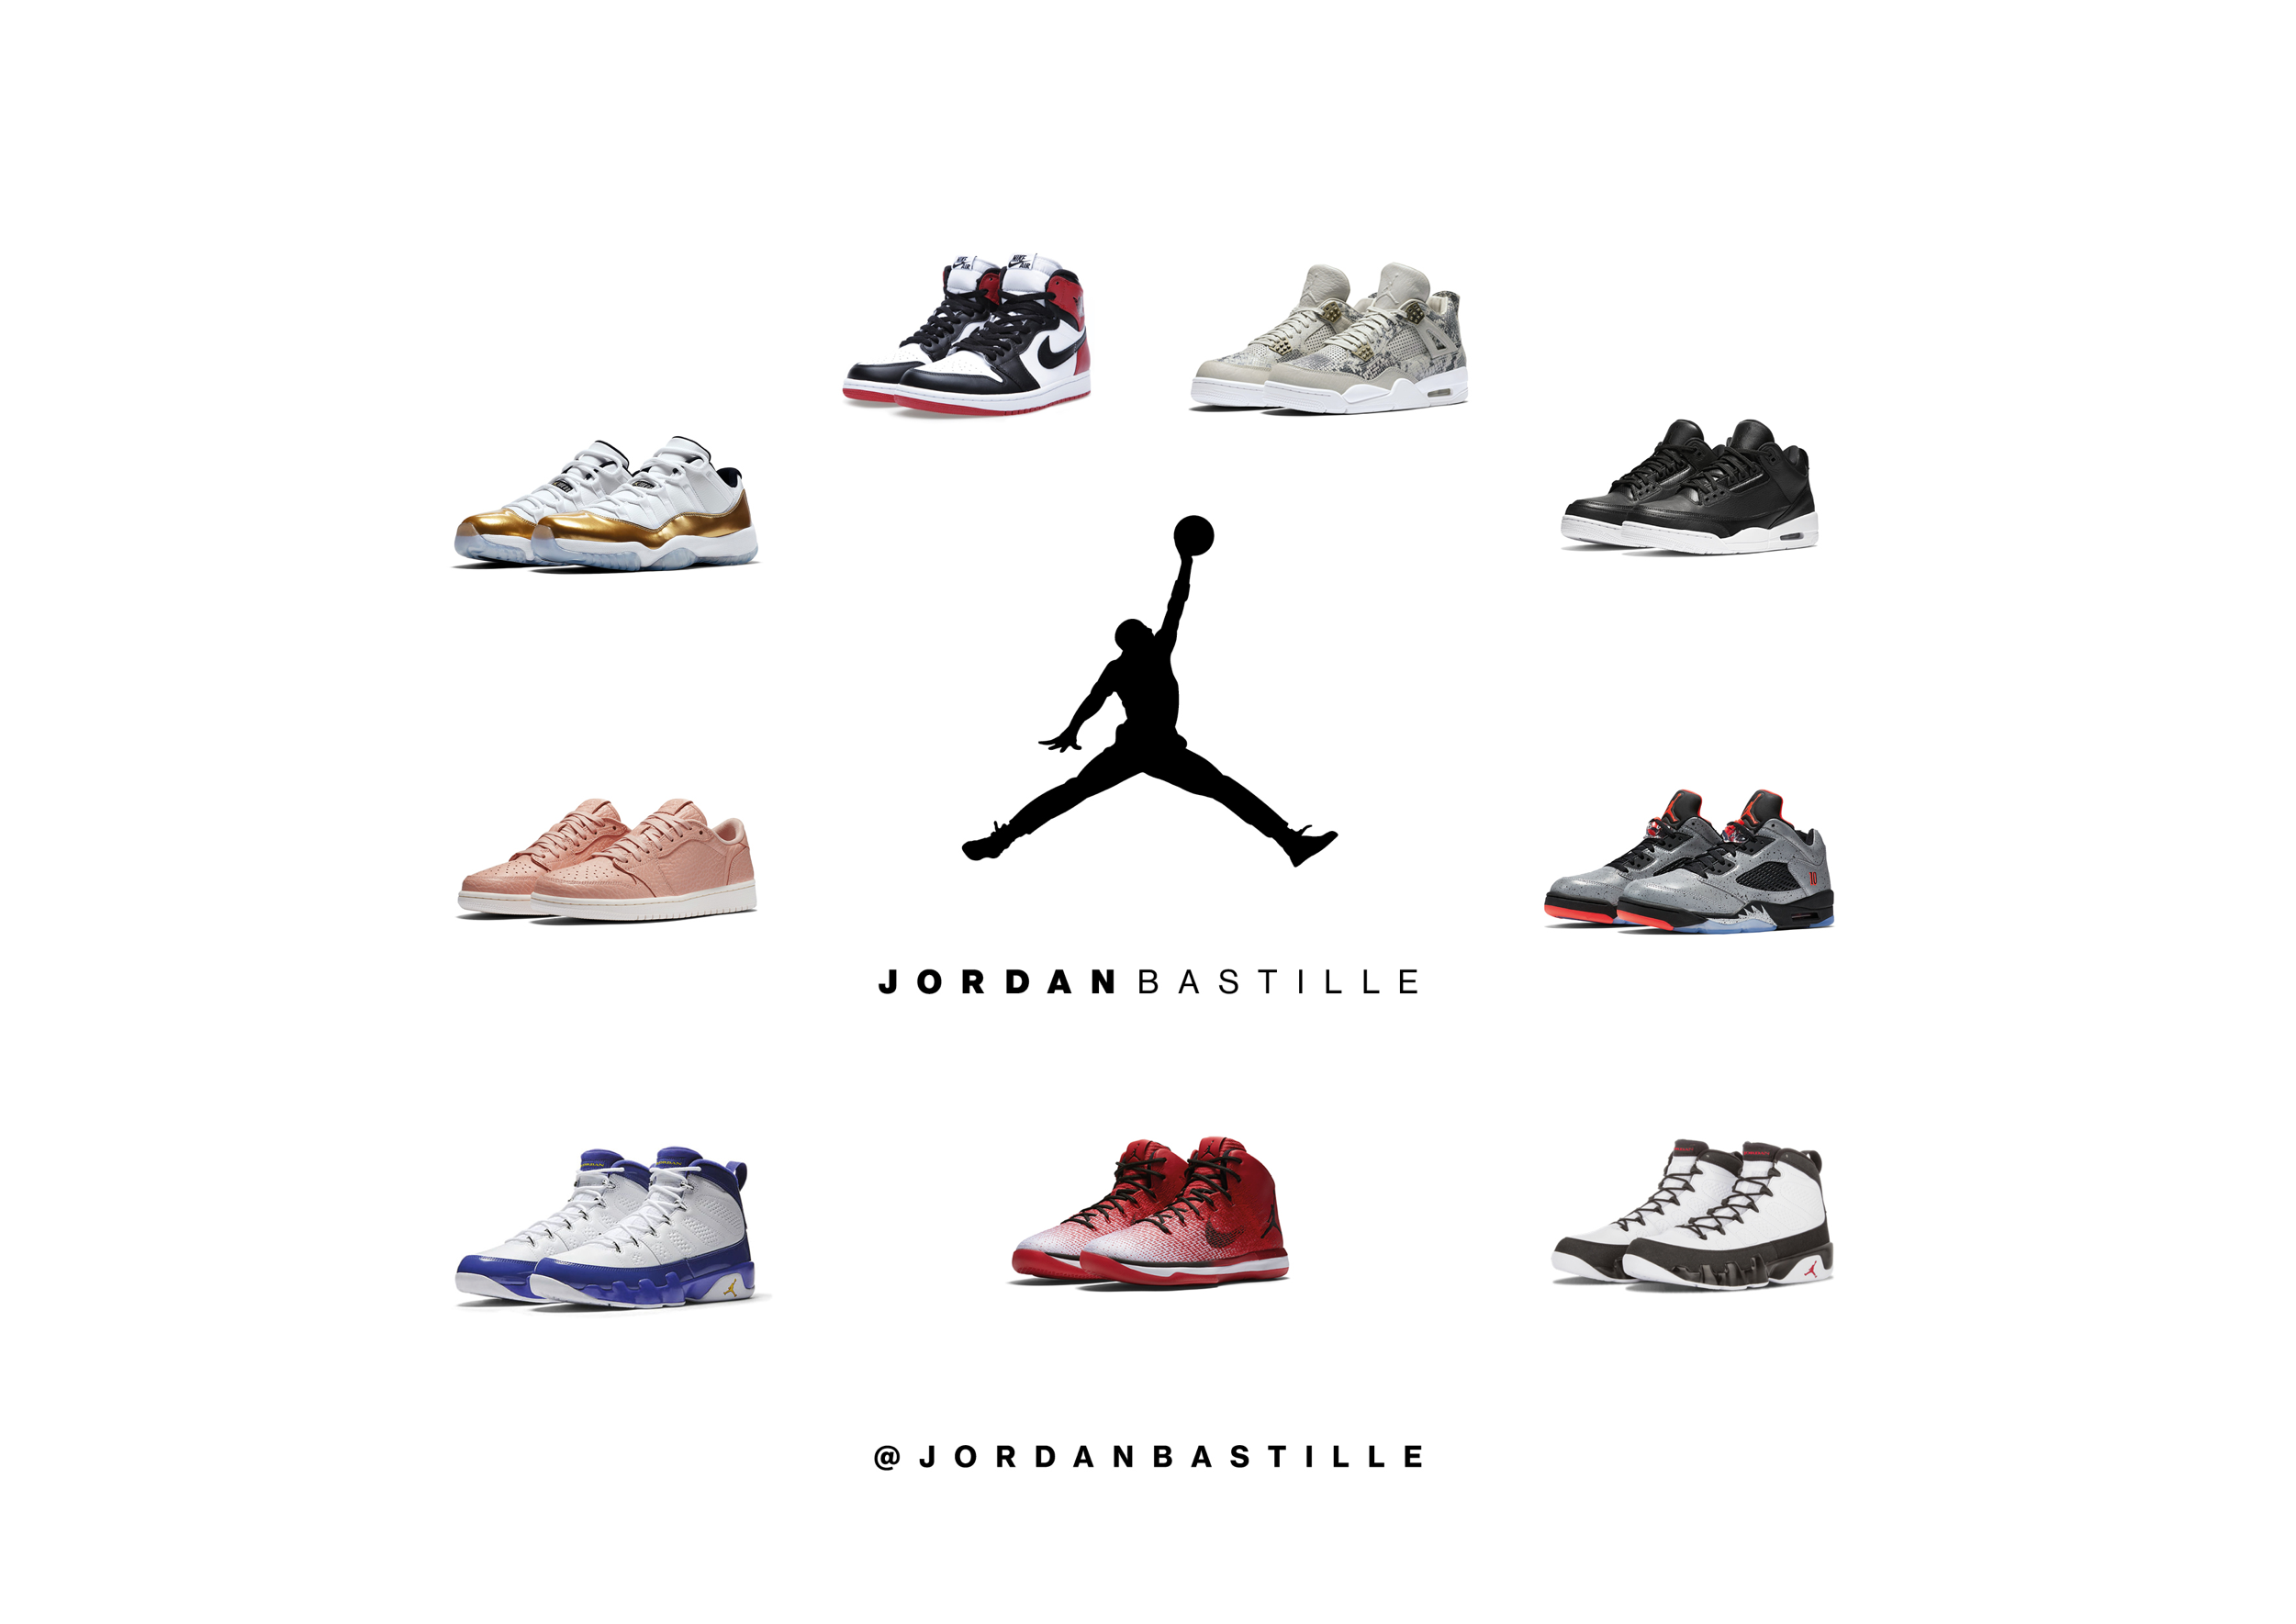 jordan-bastille-boutique-paris-sneakers